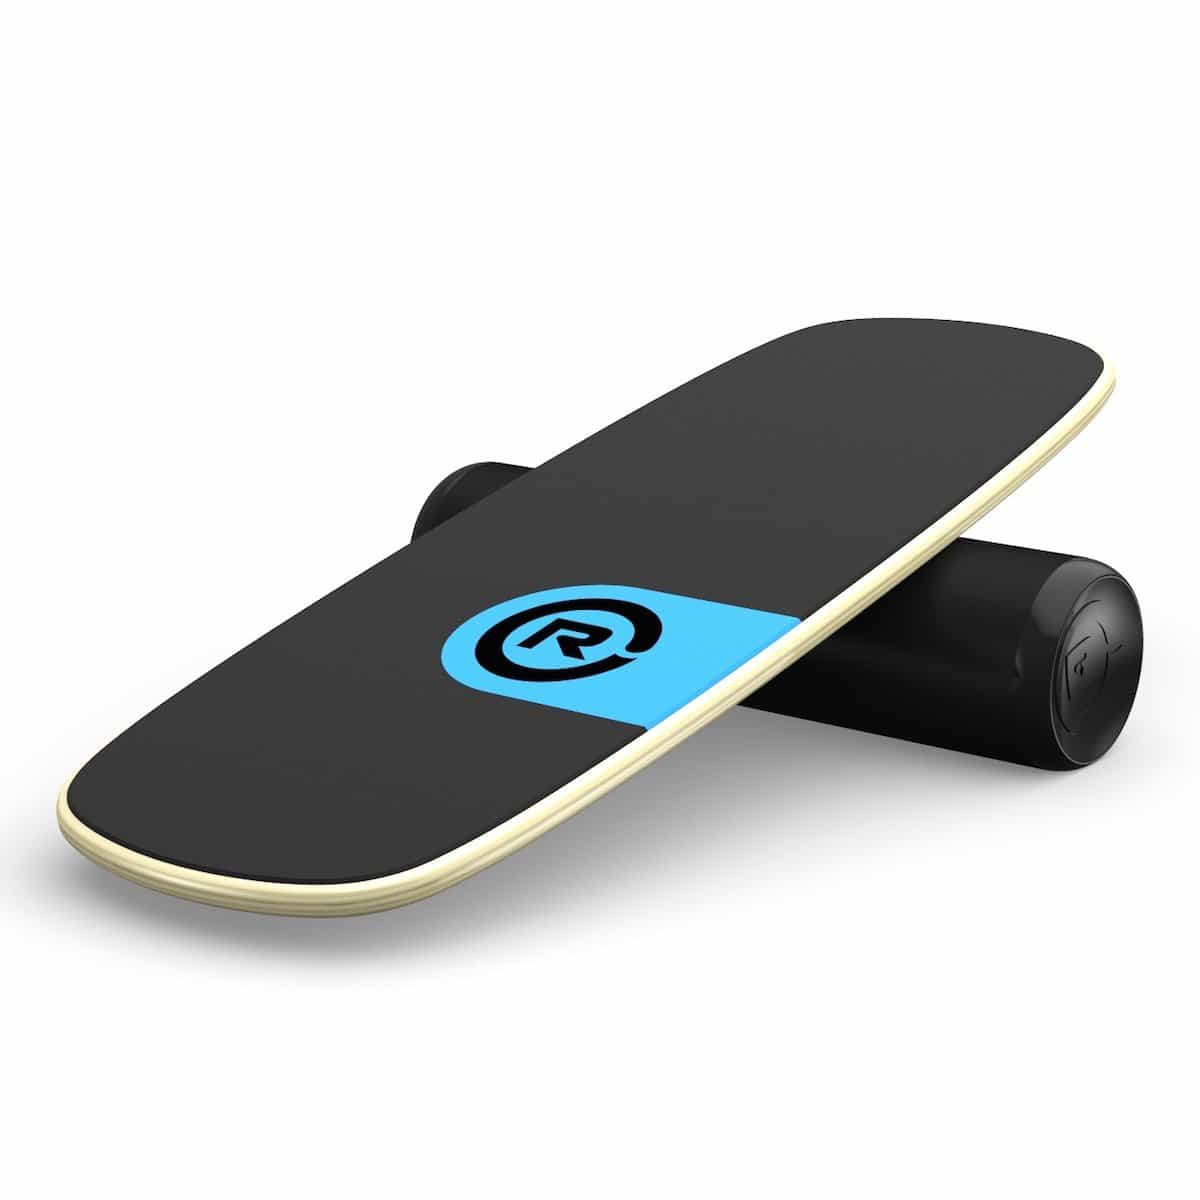 Balance Board With Roller: Buyer's Guide & Reviews